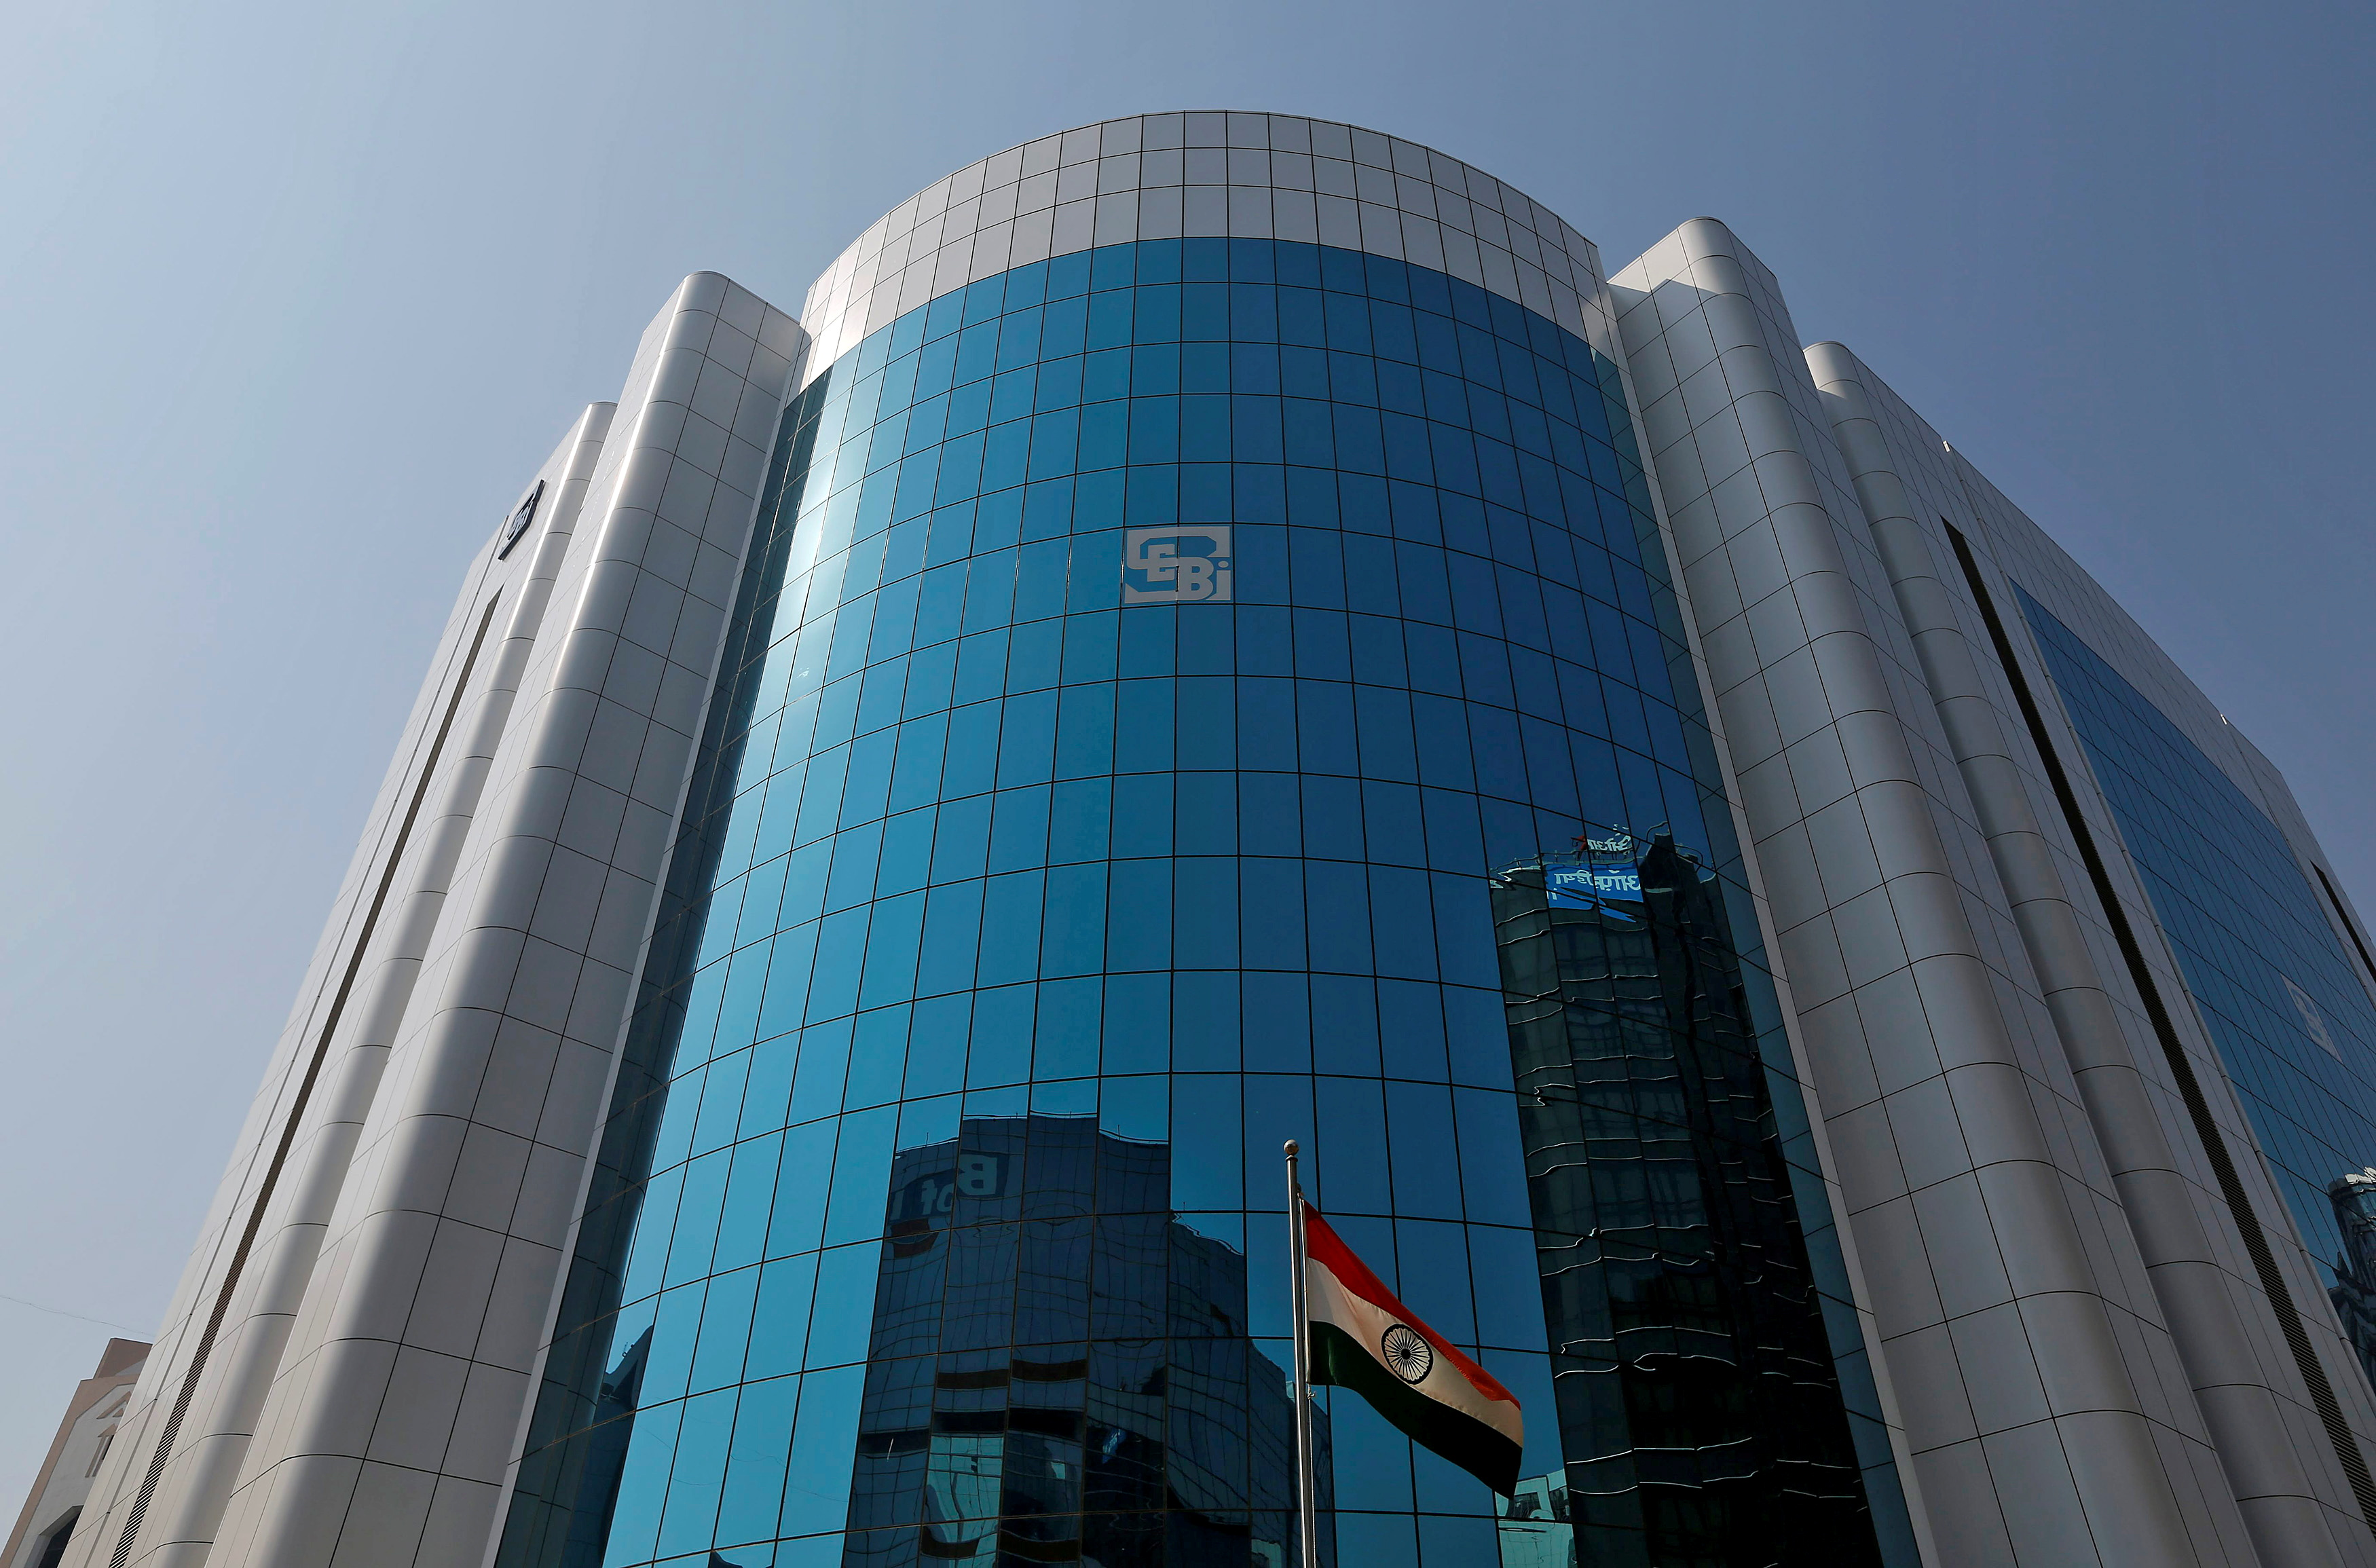 The Securities and Exchange Board of India (SEBI) offices, Mumbai, India. REUTERS/Shailesh Andrade